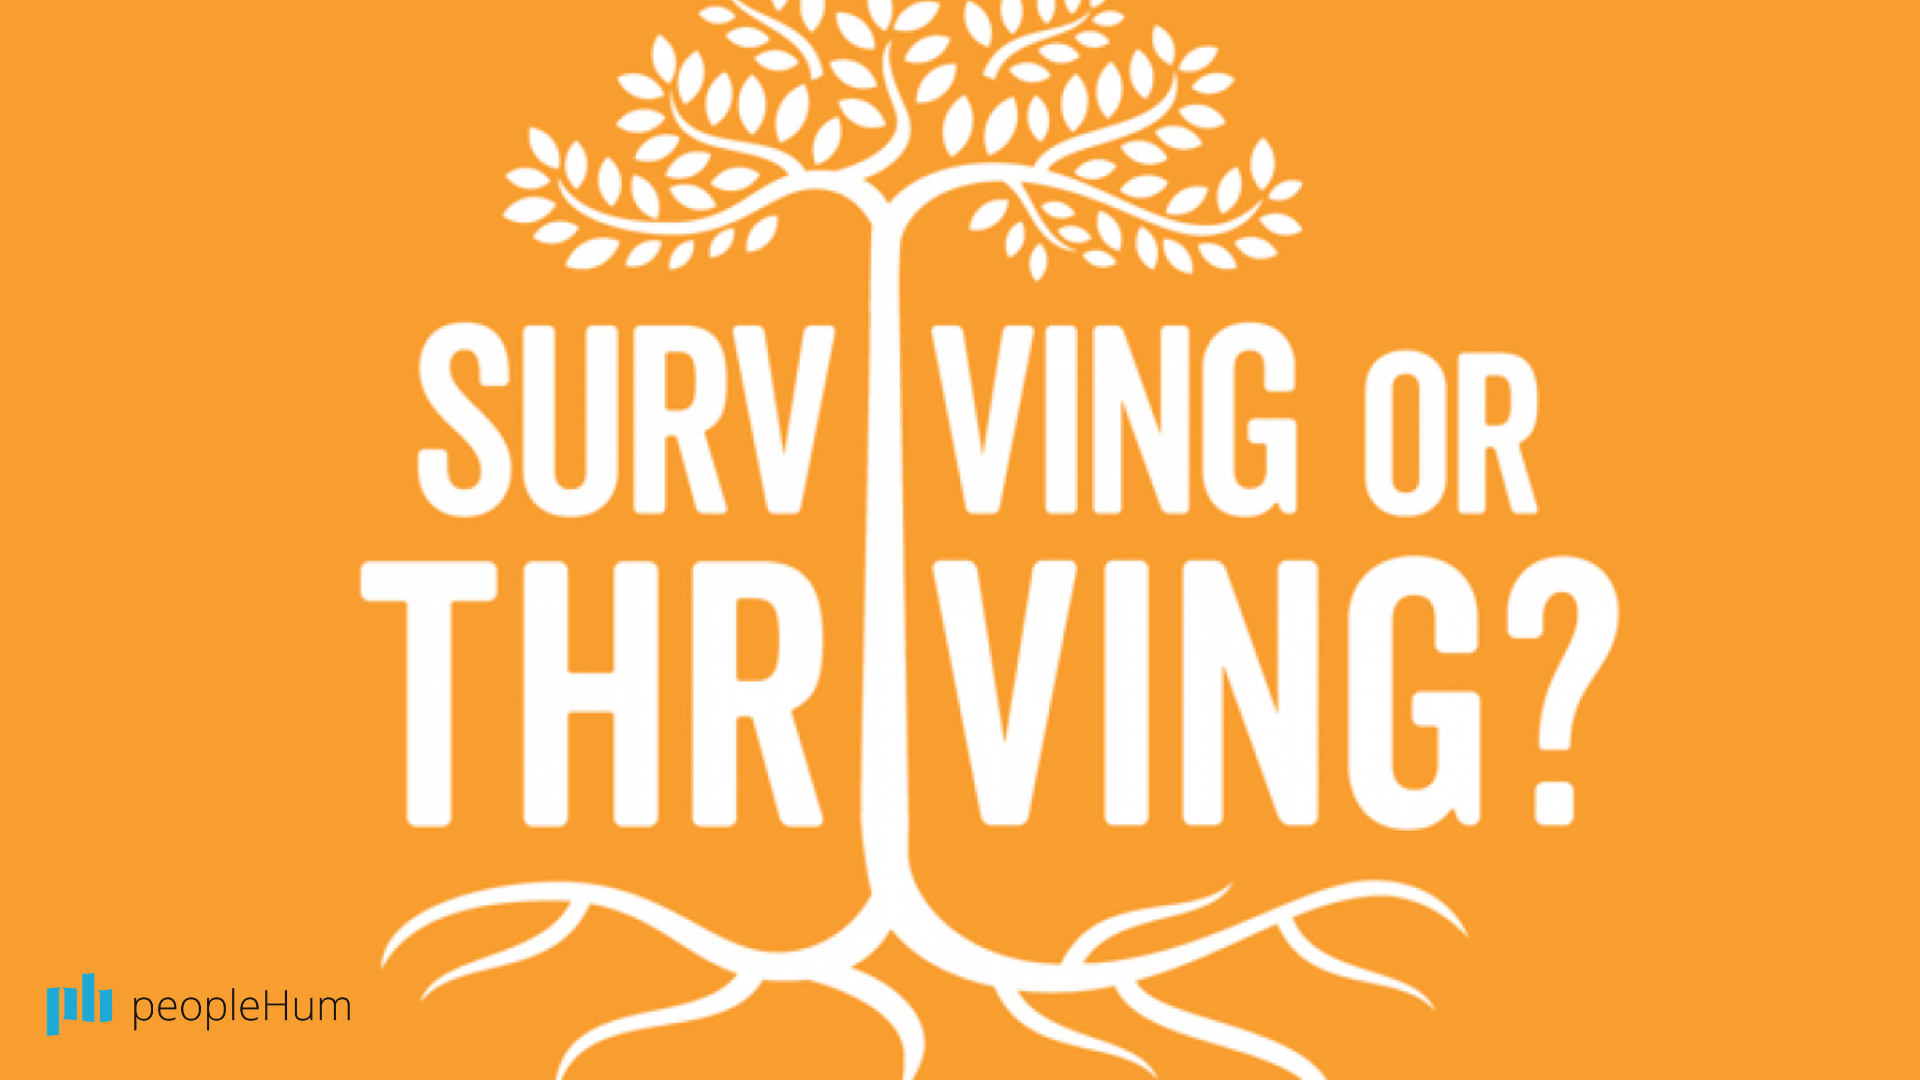 Three tips to thrive during Covid-19